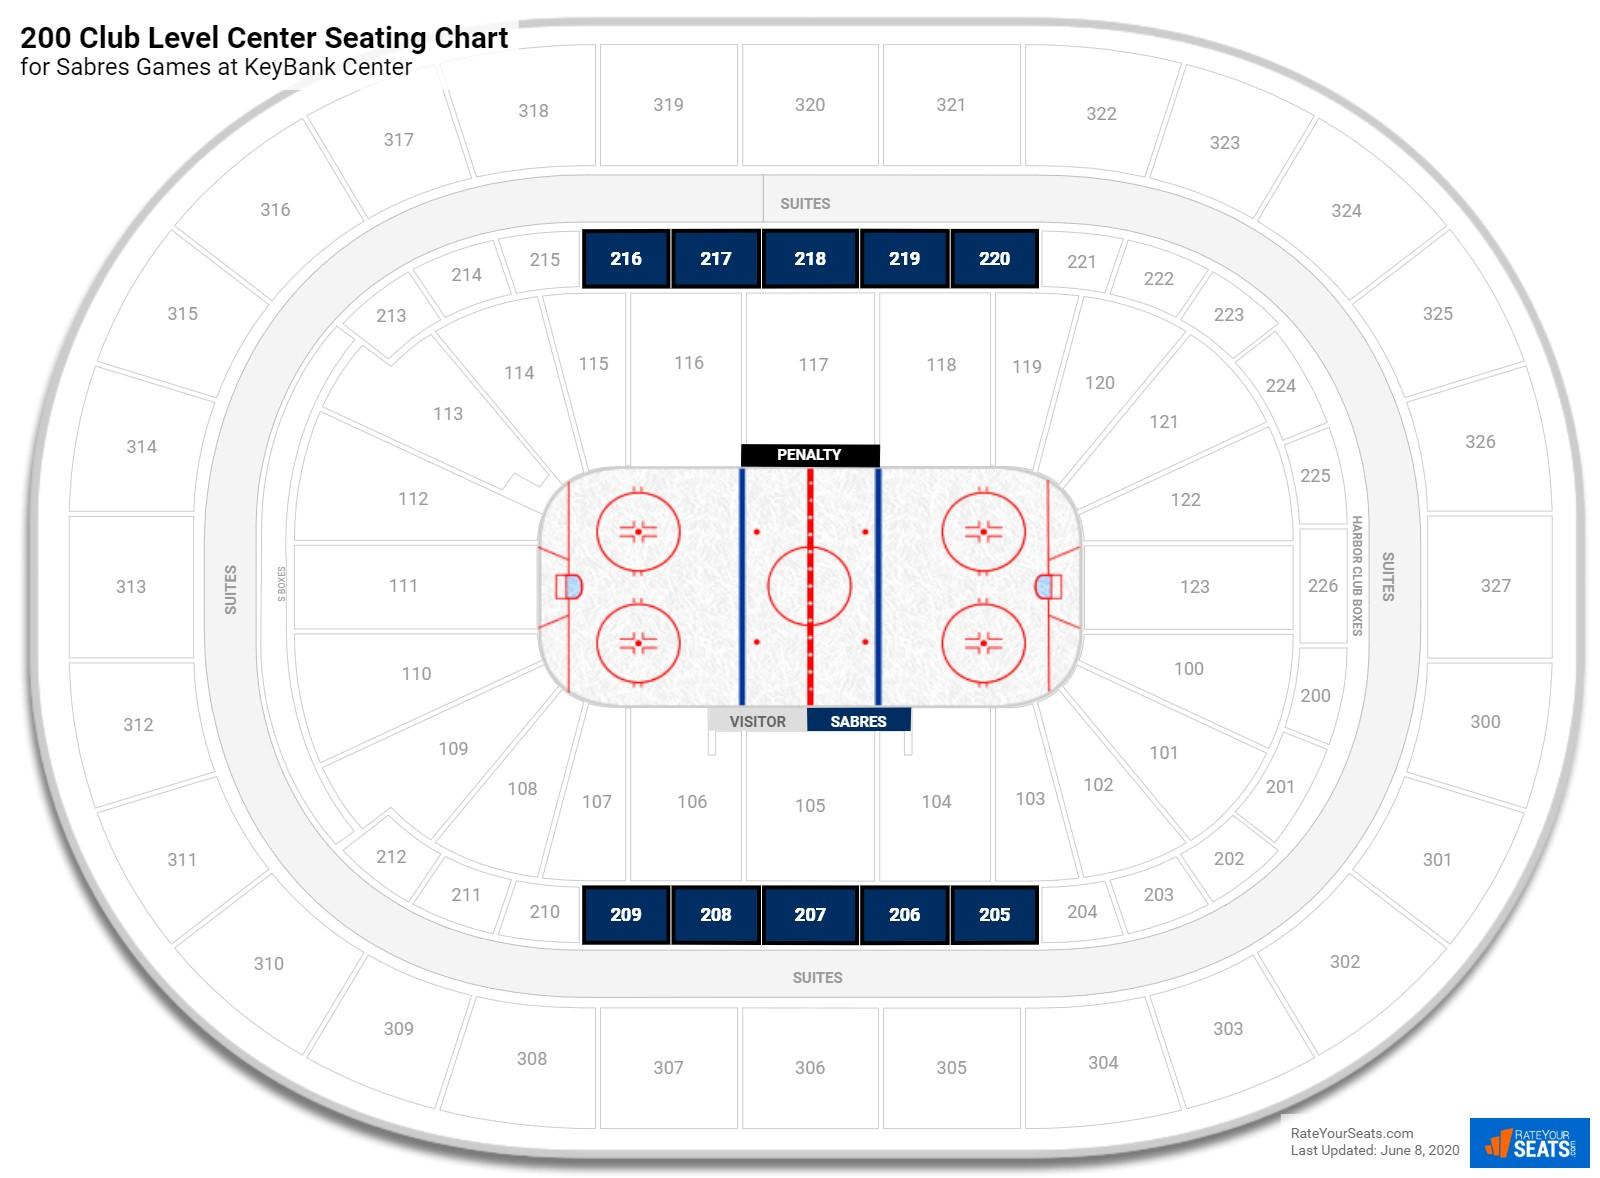 KeyBank Center Club Level Center seating chart